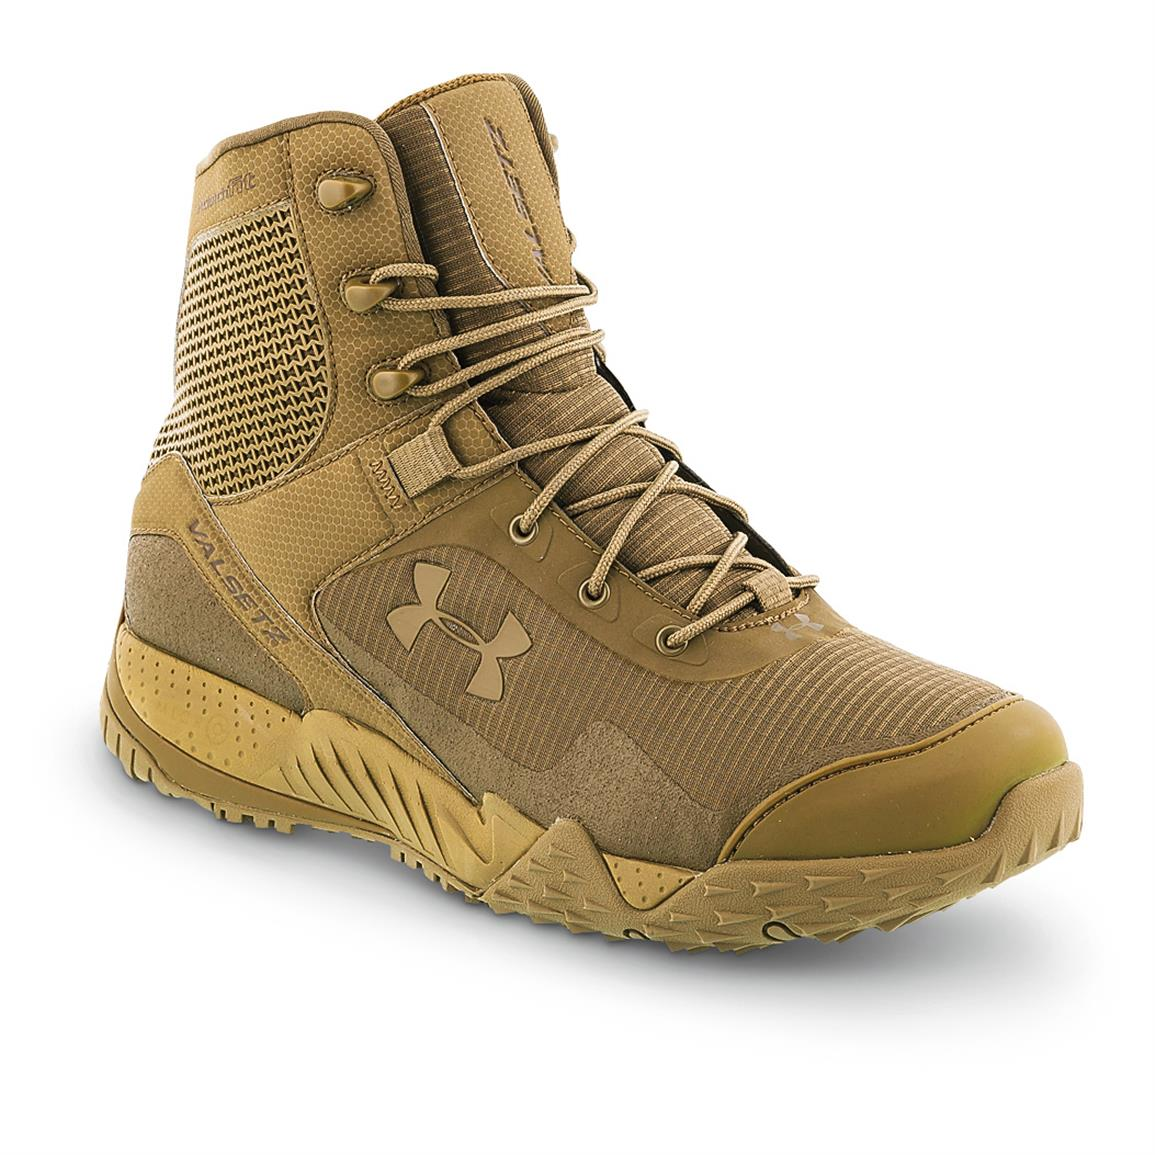 Under Armour Men's Valsetz Tactical RTS Tactical Boots, Coyote